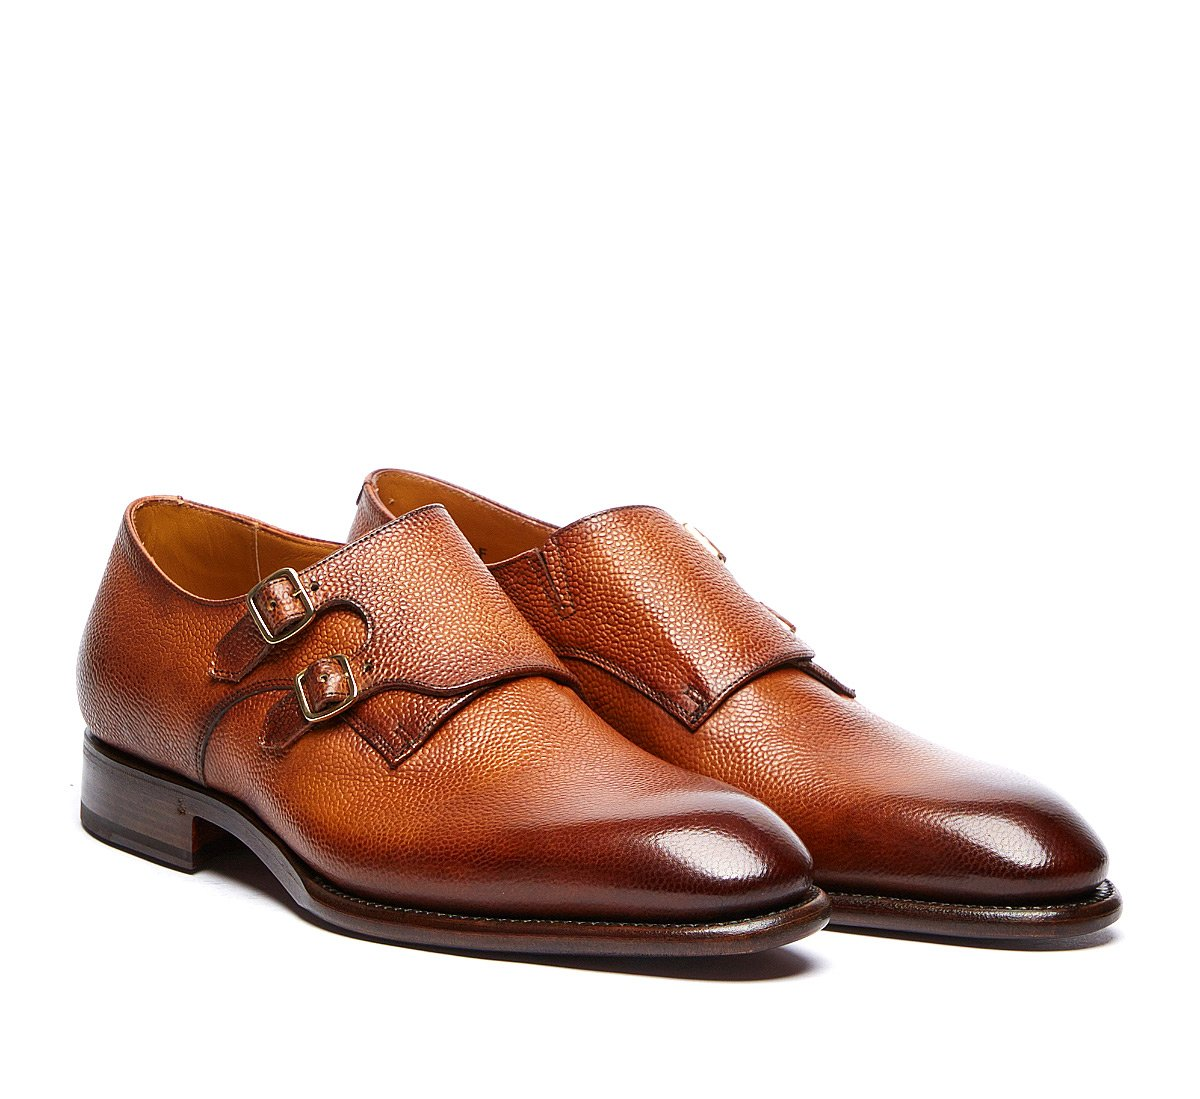 Fabi Flex Goodyear double-monk shoes